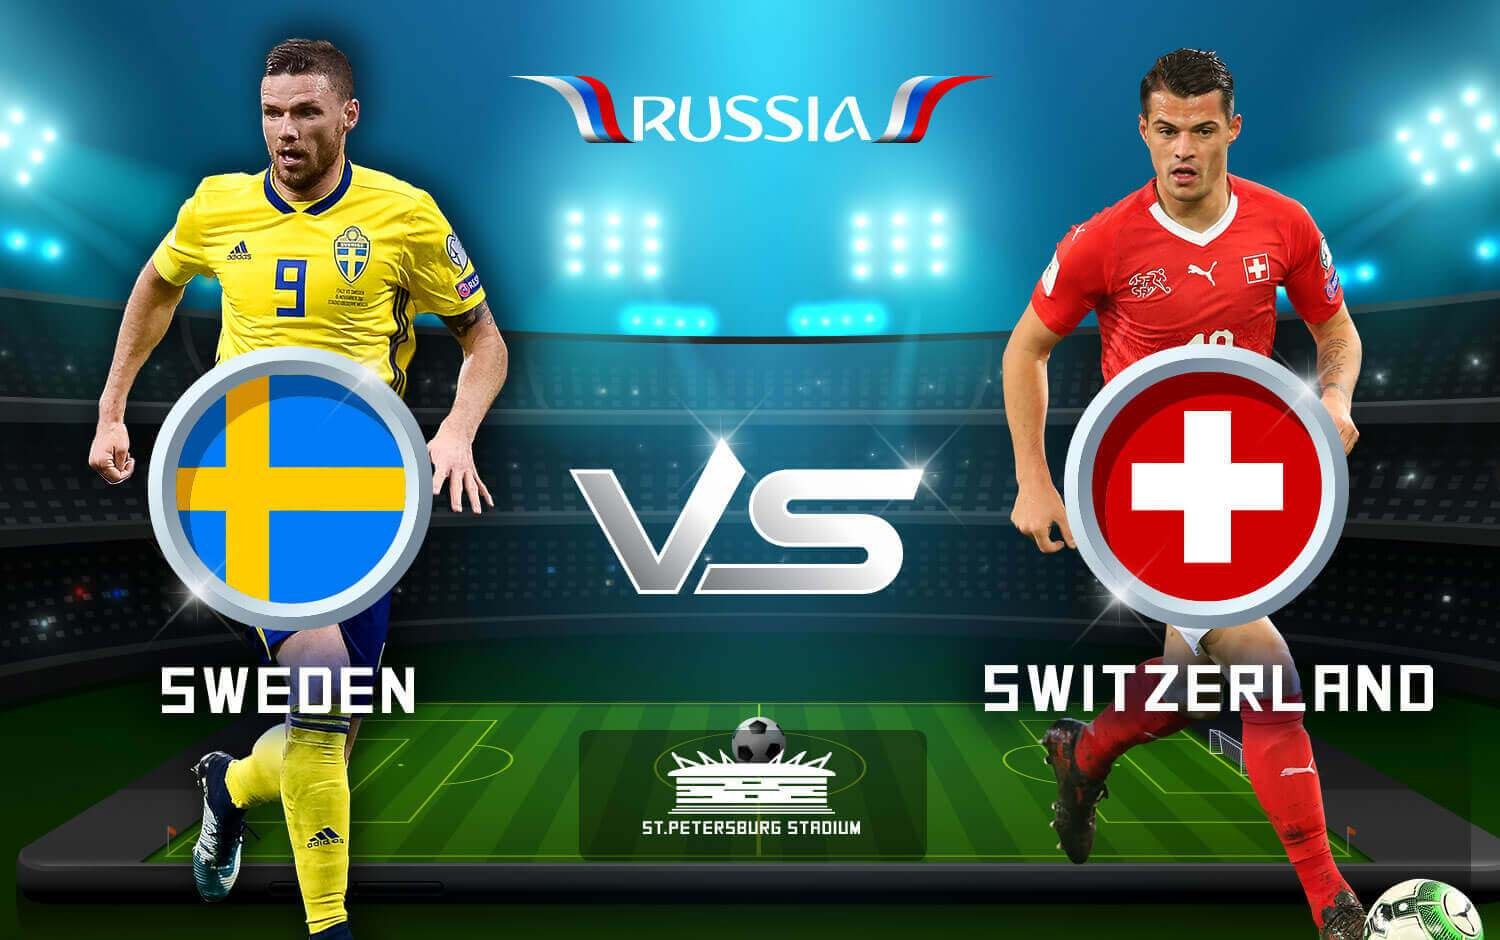 Sweden vs Switzerland